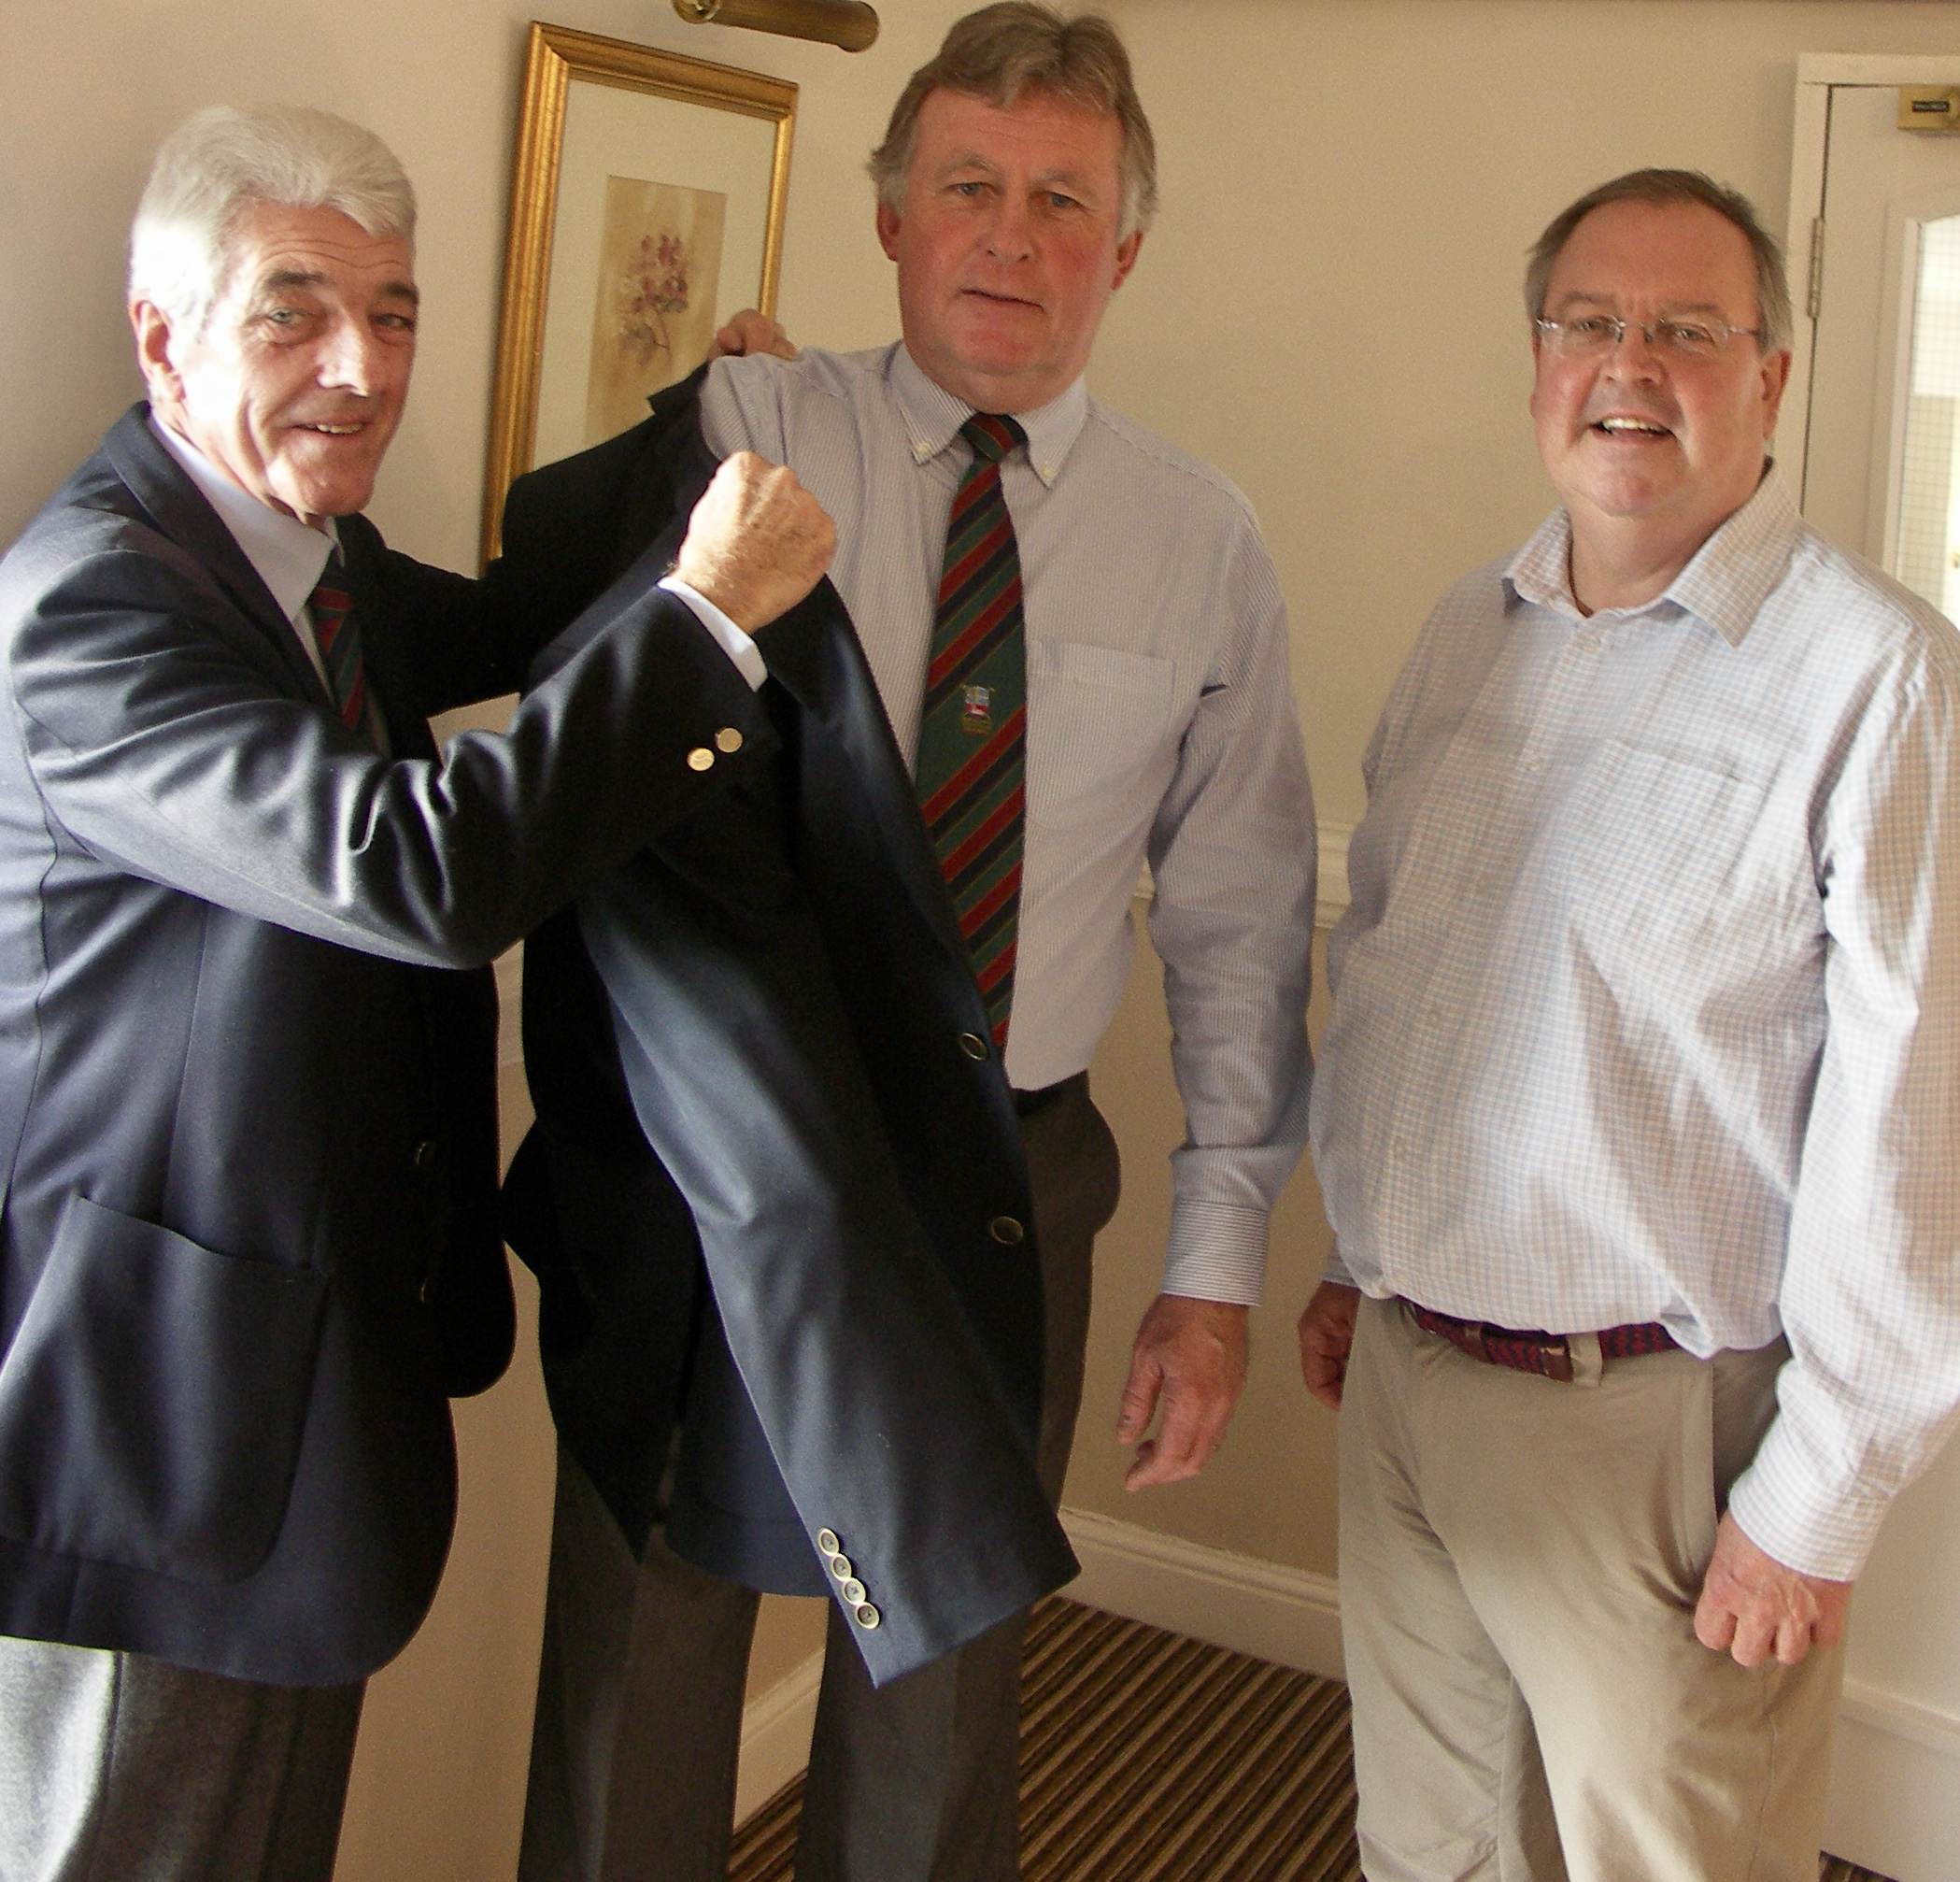 Alan Wallcroft (left) helps new Bransford seniors' captain Dave Miller don the official jacket for 2018 watched by vice-captain Andy Falconer (right)